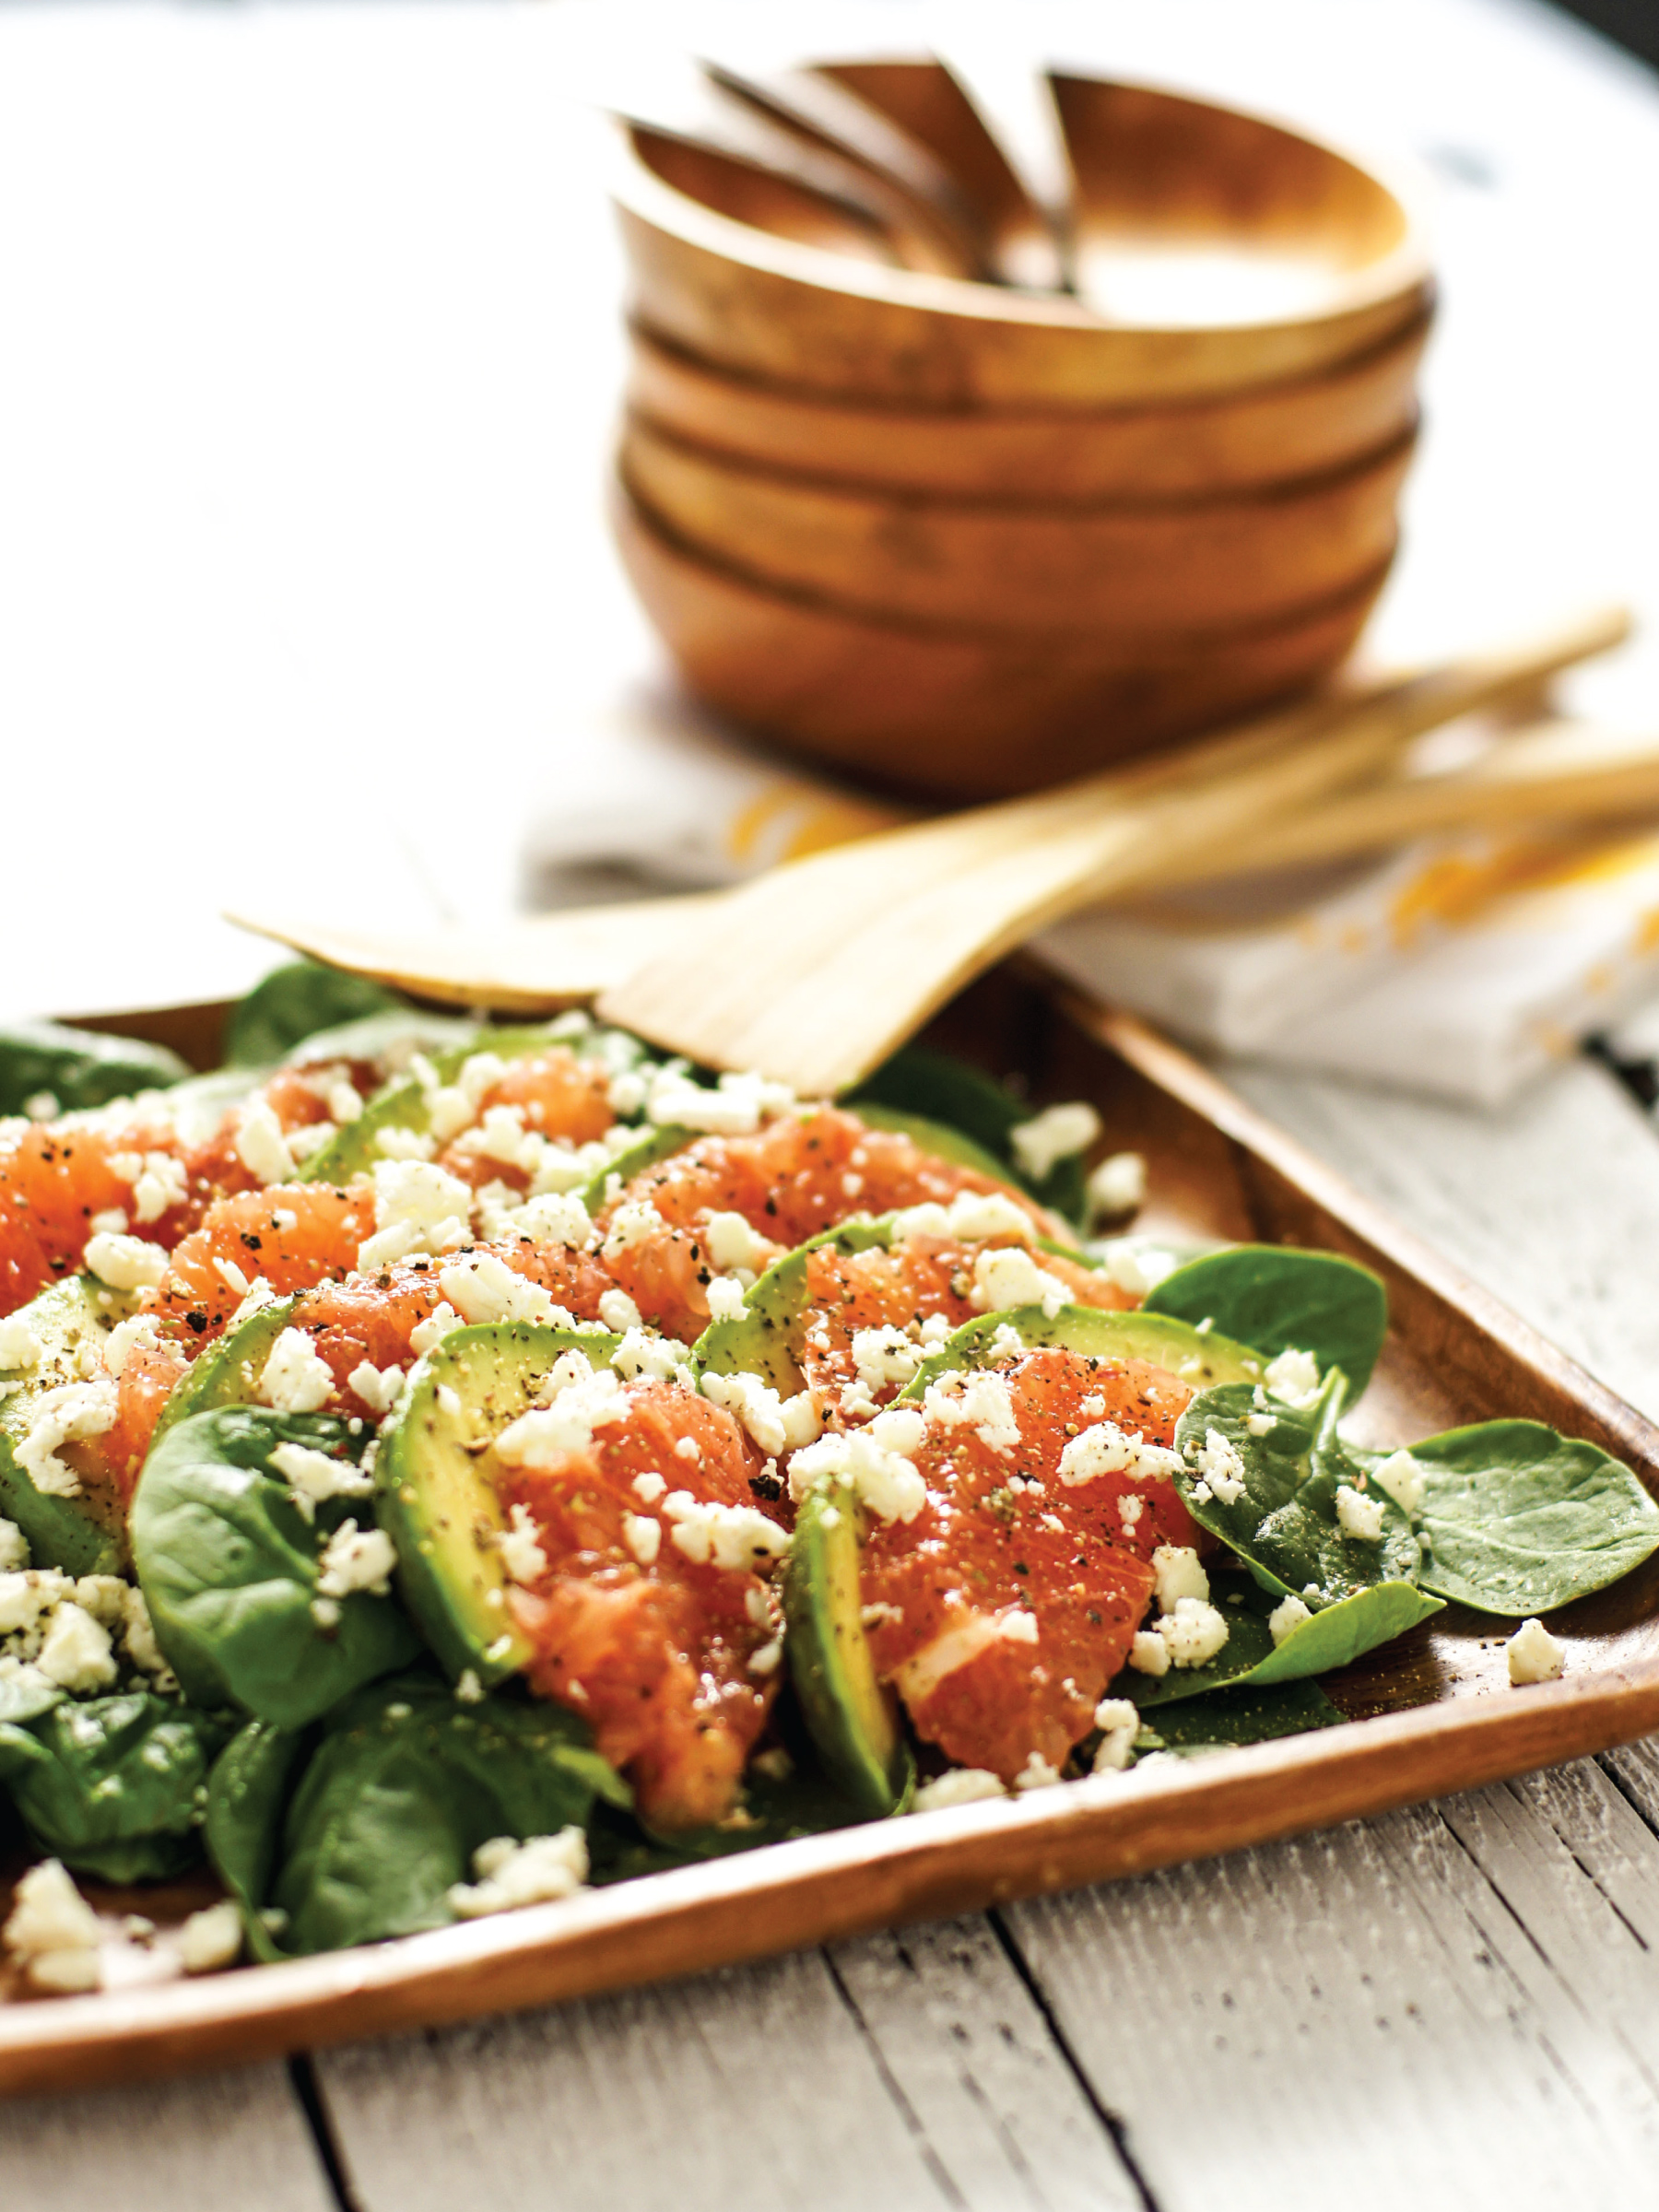 Spinach Avocado Grapefruit Salad for HGTV Gardens by Sam Henderson of Today's Nest.